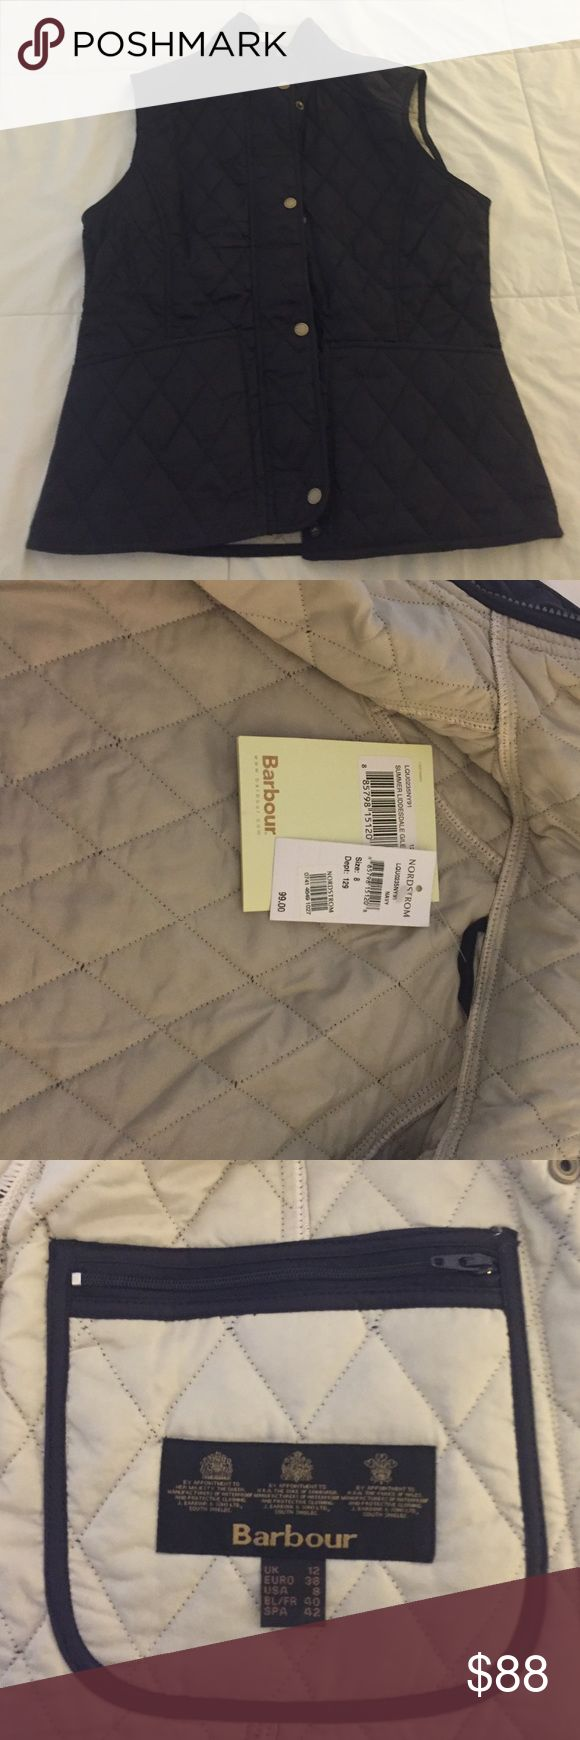 Barbour vest Barbour vest new with tags navy outside besiege inside with pockets. Size 8 Barbour Jackets & Coats Vests